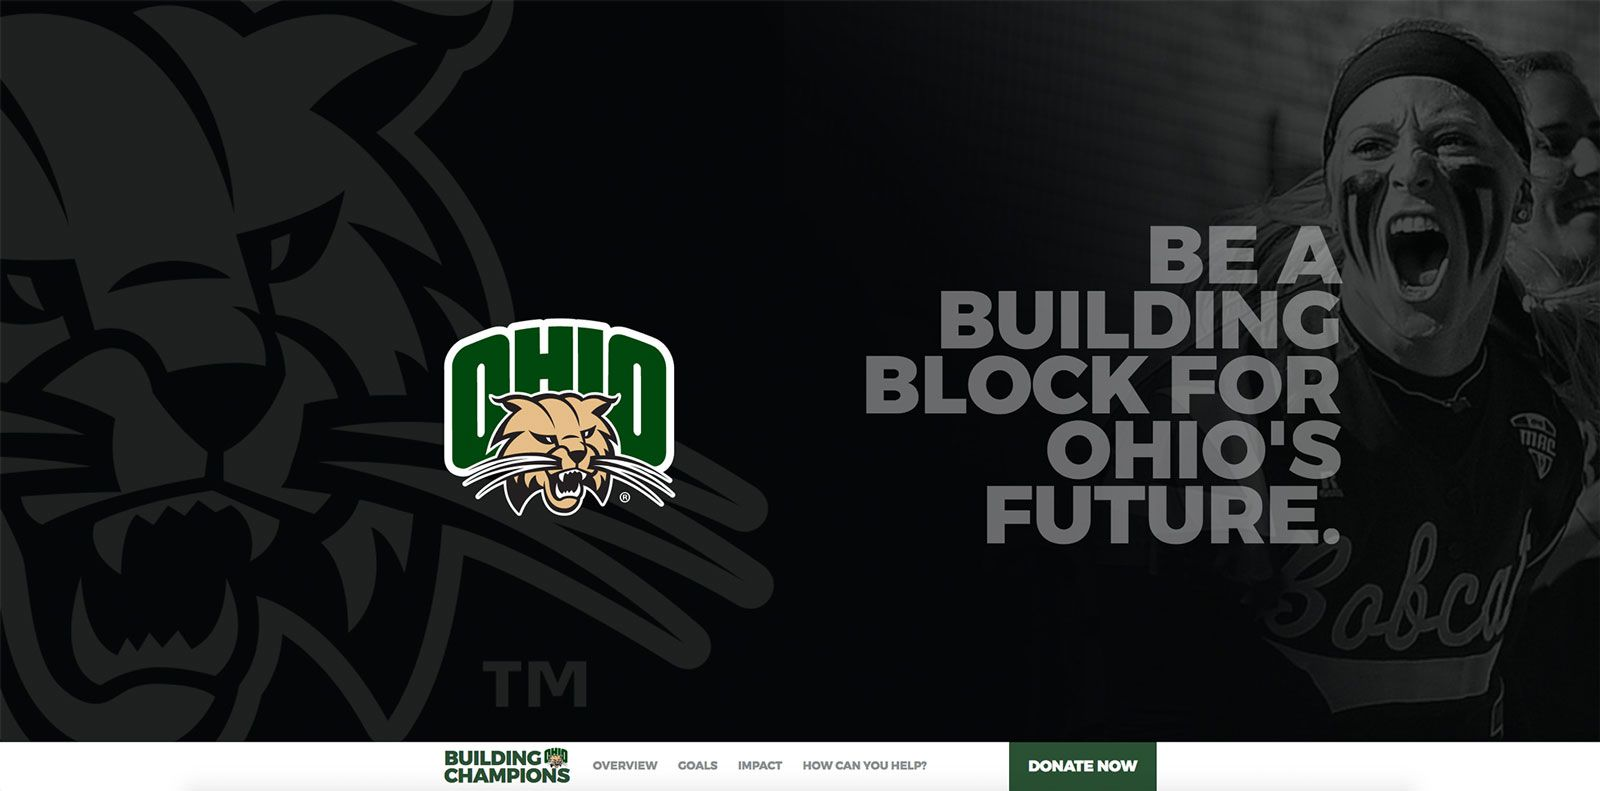 Fundraising Campaign Website | <a href='http://bobcatchampions.com/' target='_blank'>Visit Site <i class='nc-icon-glyph arrows-1_share-91'></i></a><br><span>Ohio University</span>